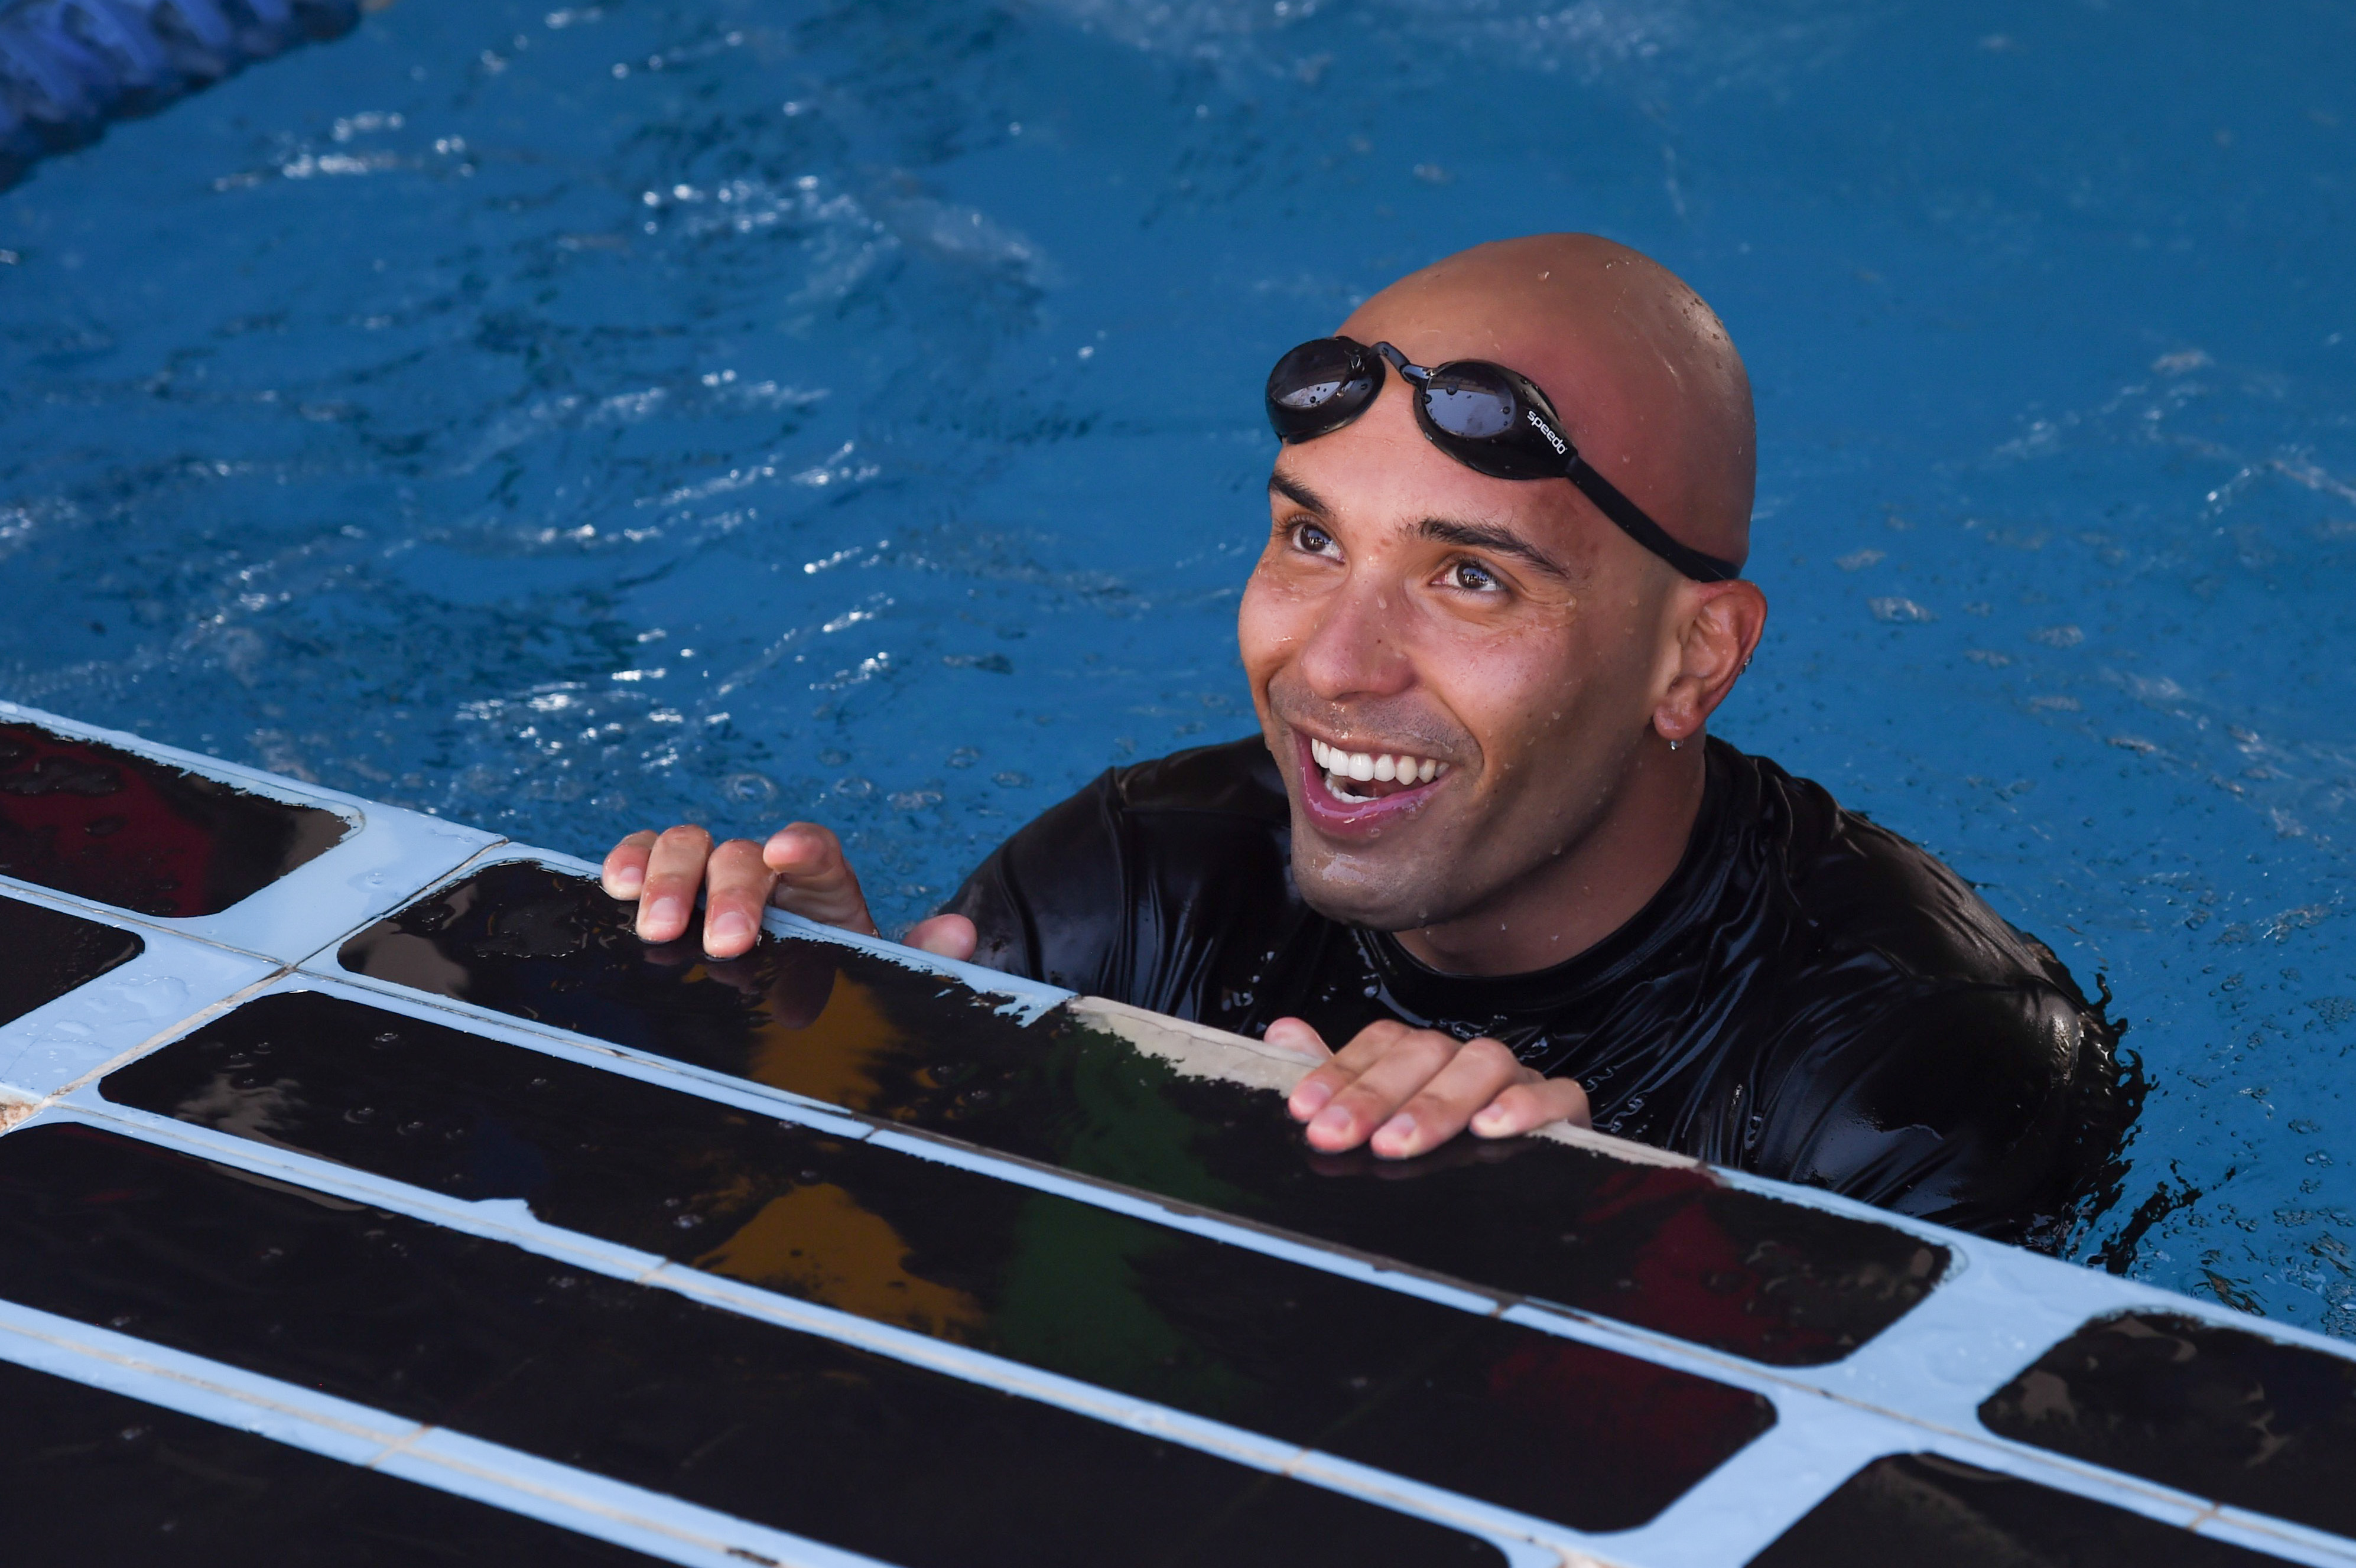 U.S. Army Staff Sgt. Juan Grisales, Combined Joint Task Force-Horn of Africa, completes the 240-meter Navy swim test during the Joint Warrior Competition, Nov. 19, 2016, Camp Lemonnier, Djibouti. The swim test occurred after the joint physical fitness test and the joint combat fitness test. These two events were comprised of pull-ups, push-ups, sit-ups, two-mile run, five-mile ruck march, a low crawl, tourniquet application, buddy carry, radio medical evacuation, grenade toss, tire flip, ammo can carry, dead lift, and rope climb. (U.S. Air National Guard photo by Staff Sgt. Penny Snoozy)